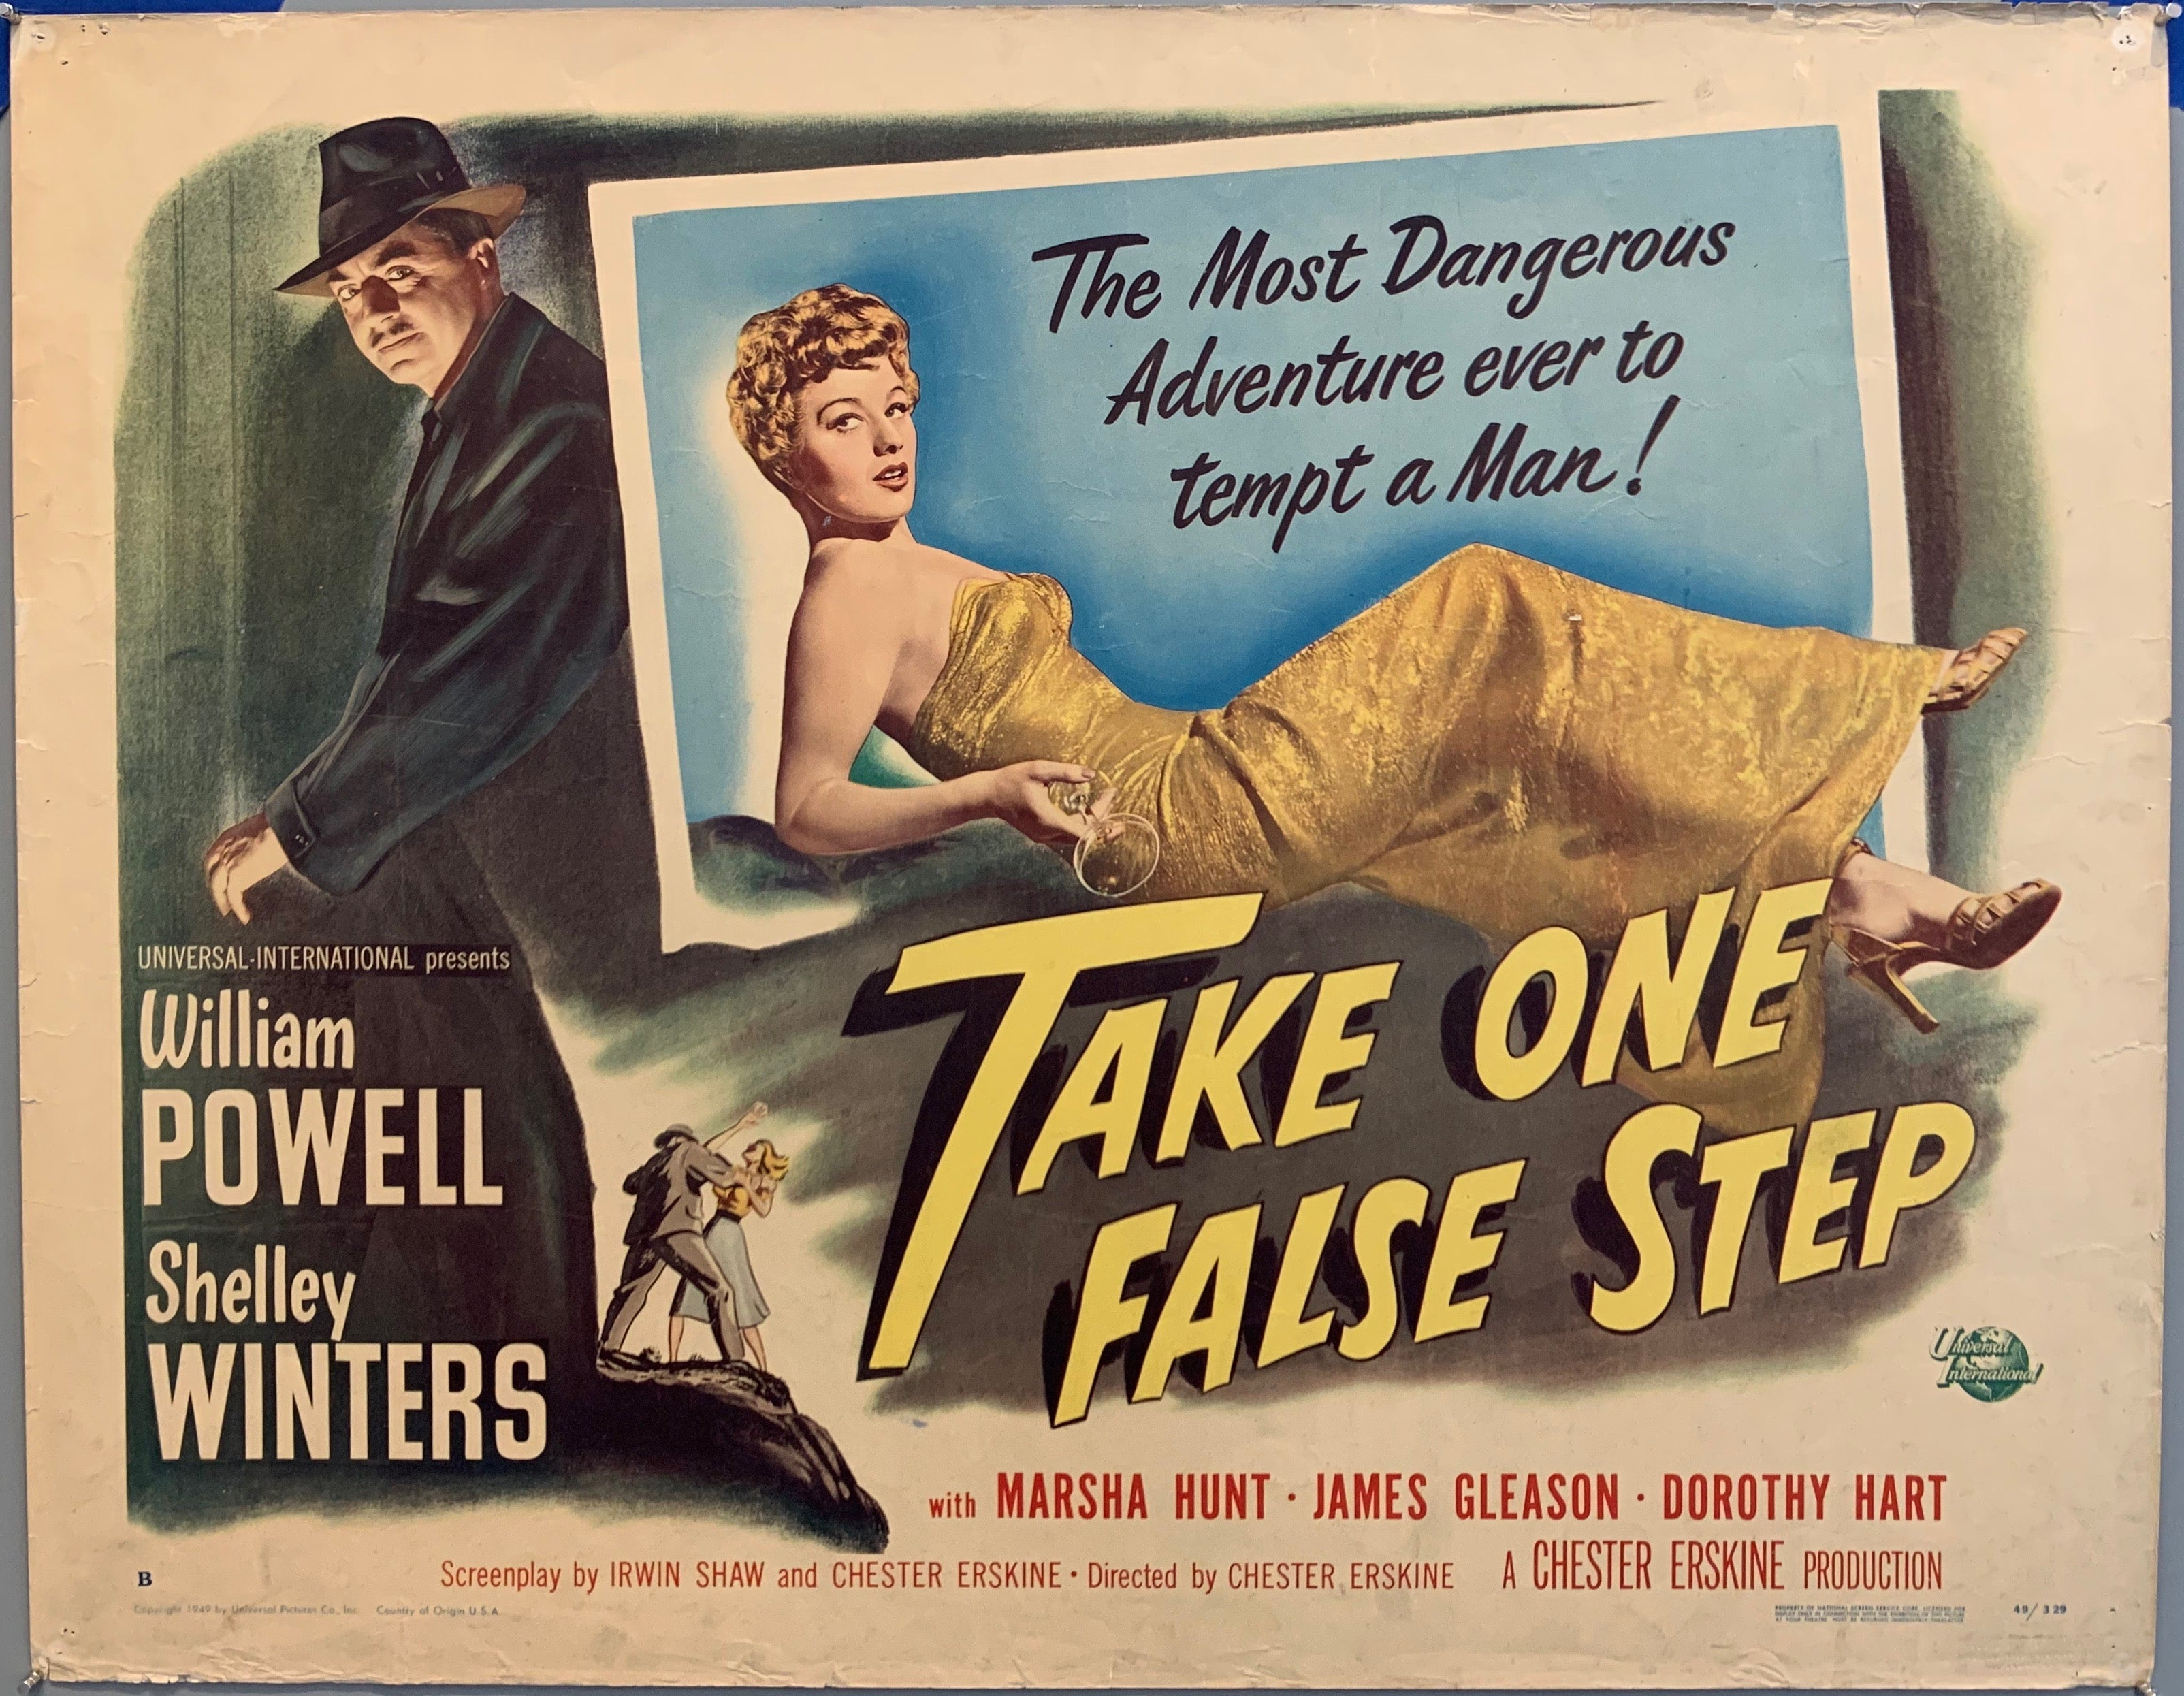 take one false step poster, the most dangerous adventure woman in dress man lurking in shadows